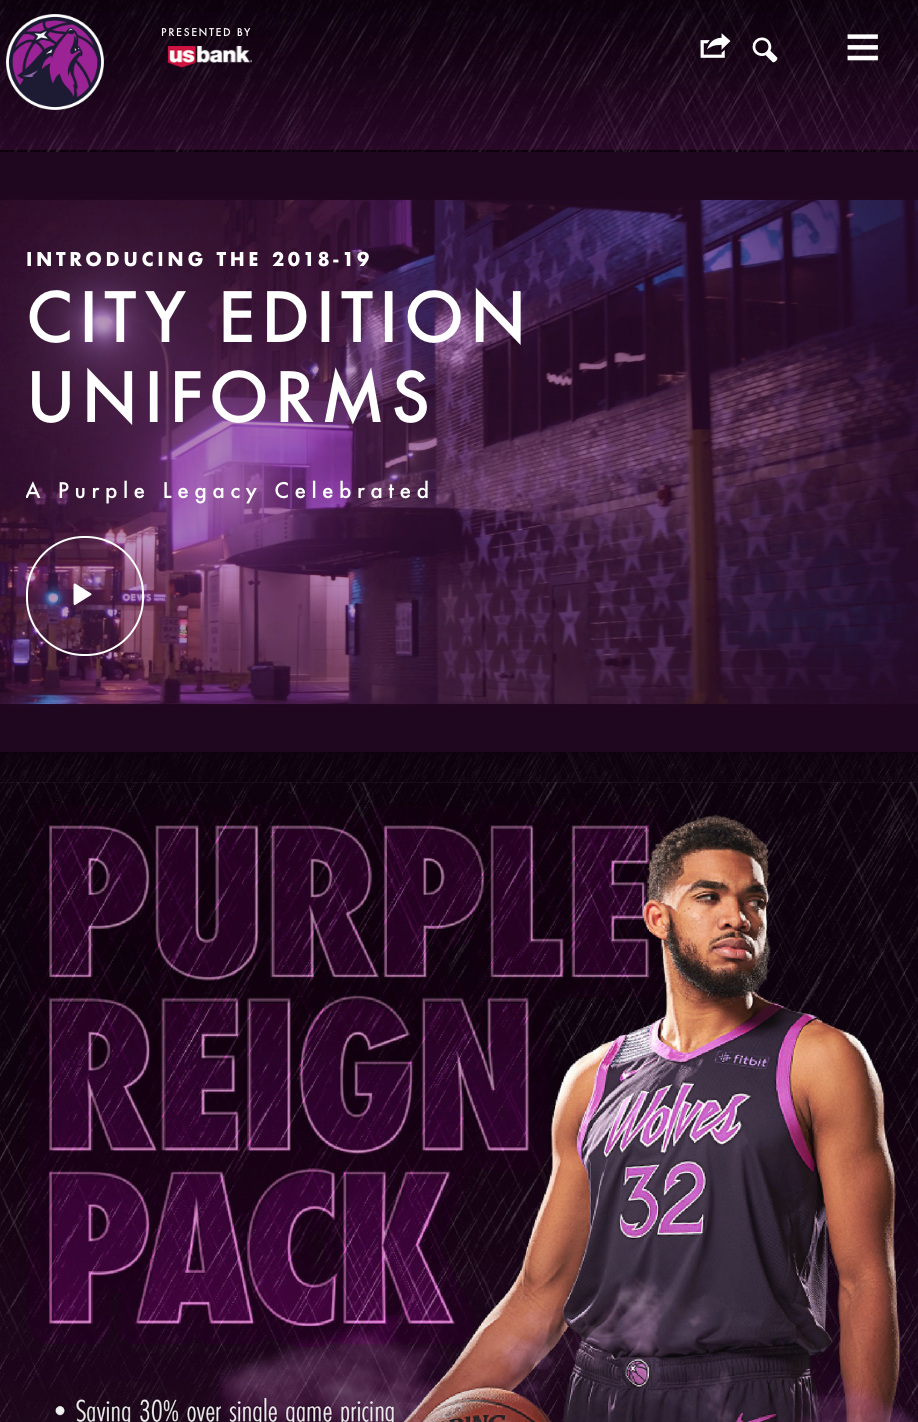 Prince-Inspired Uniform Page - Mobile View